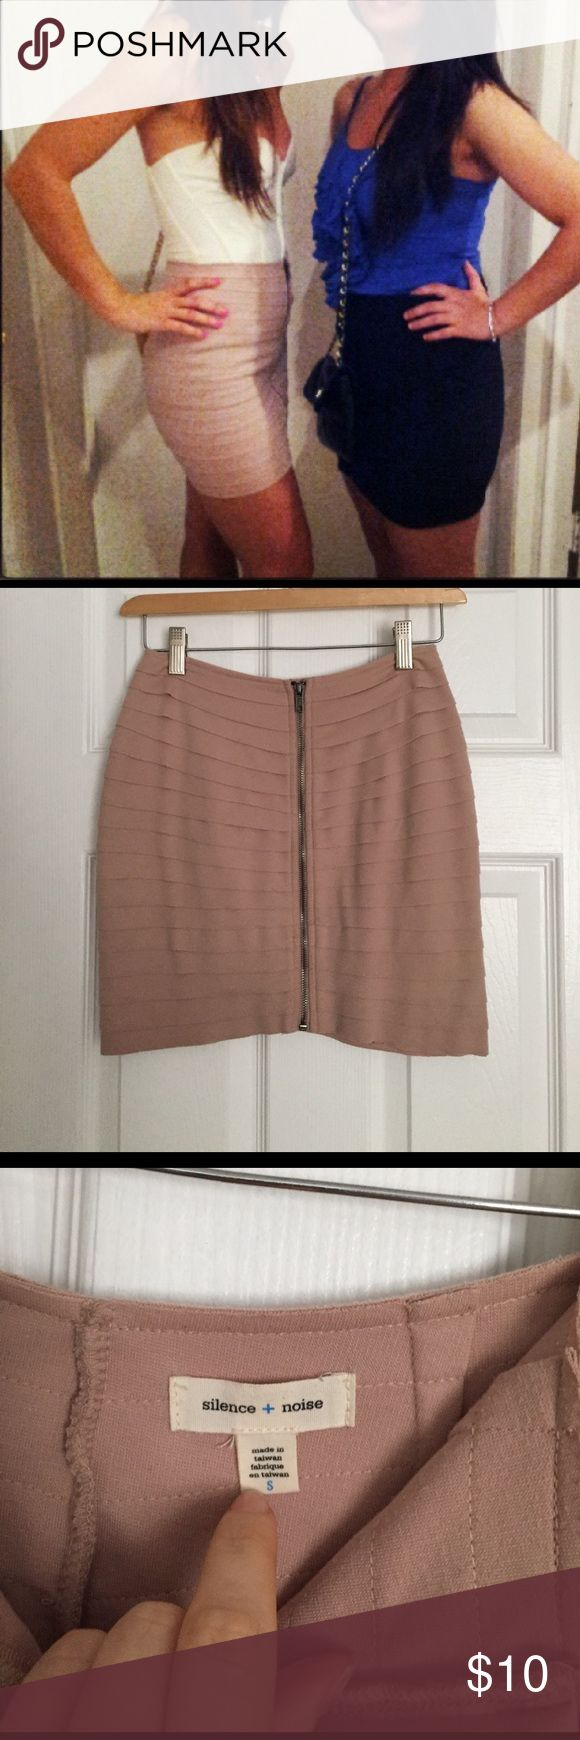 Nude zip up skirt Size small very very flattering on the hips/butt. Worn a few times but still in good condition. Once worn you can't tell much of the little fuzzy thing on the back. I zoomed in to take pic. Purchased either from Nordstrom or urban outfitters (can't remember right now lol). By the way I'm also selling that white top. It's. Y Parker and it's 100 % silk. Go check it out!! Skirts Mini